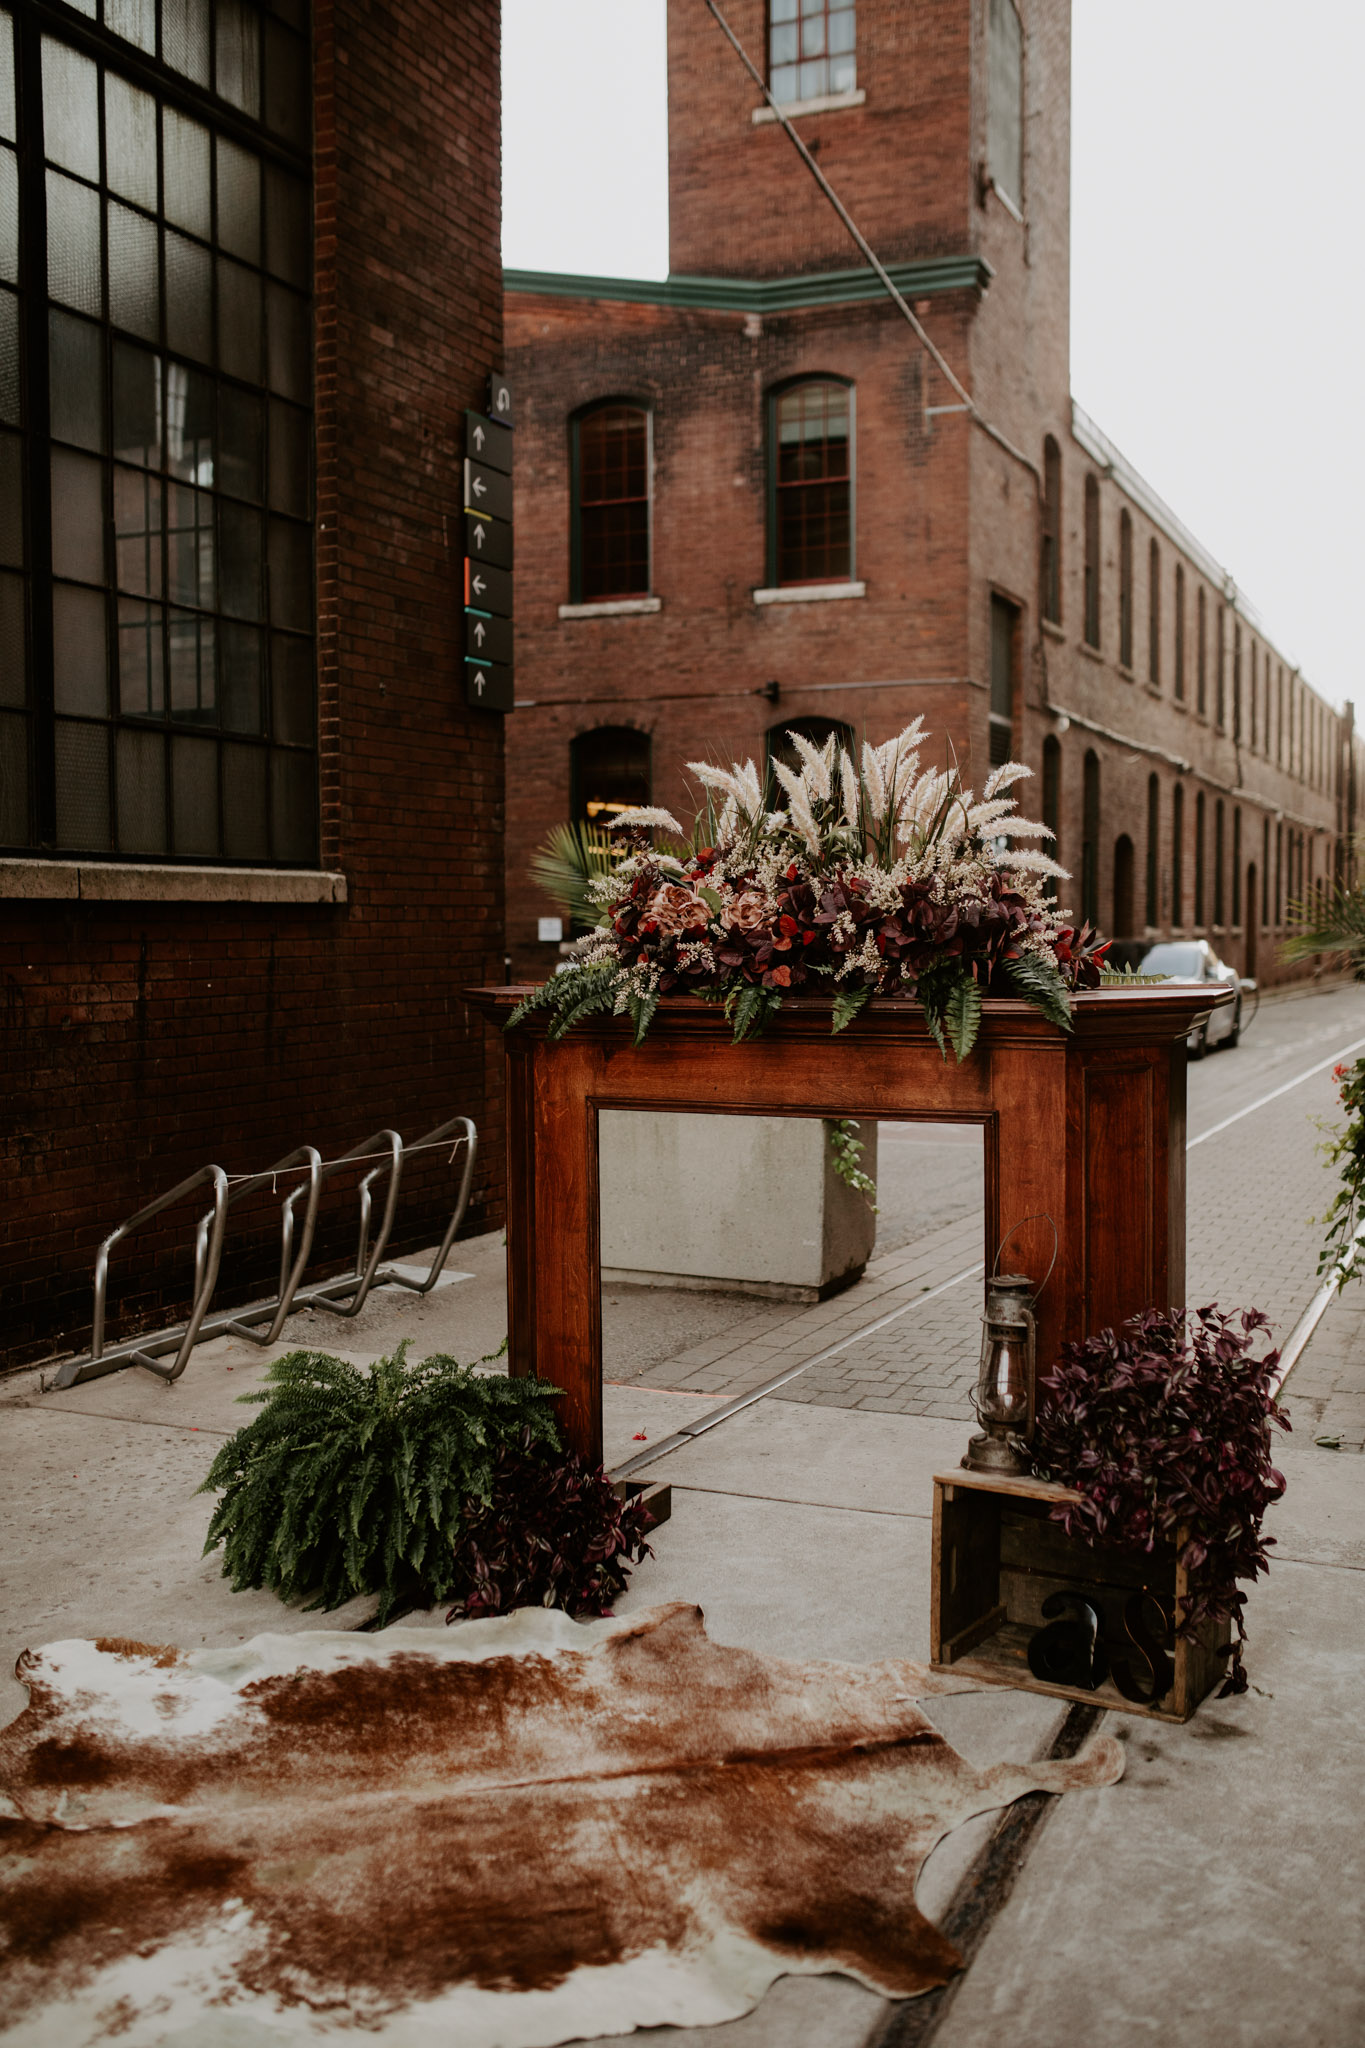 Caffino Wedding - outdoor alter fireplace with fall florals